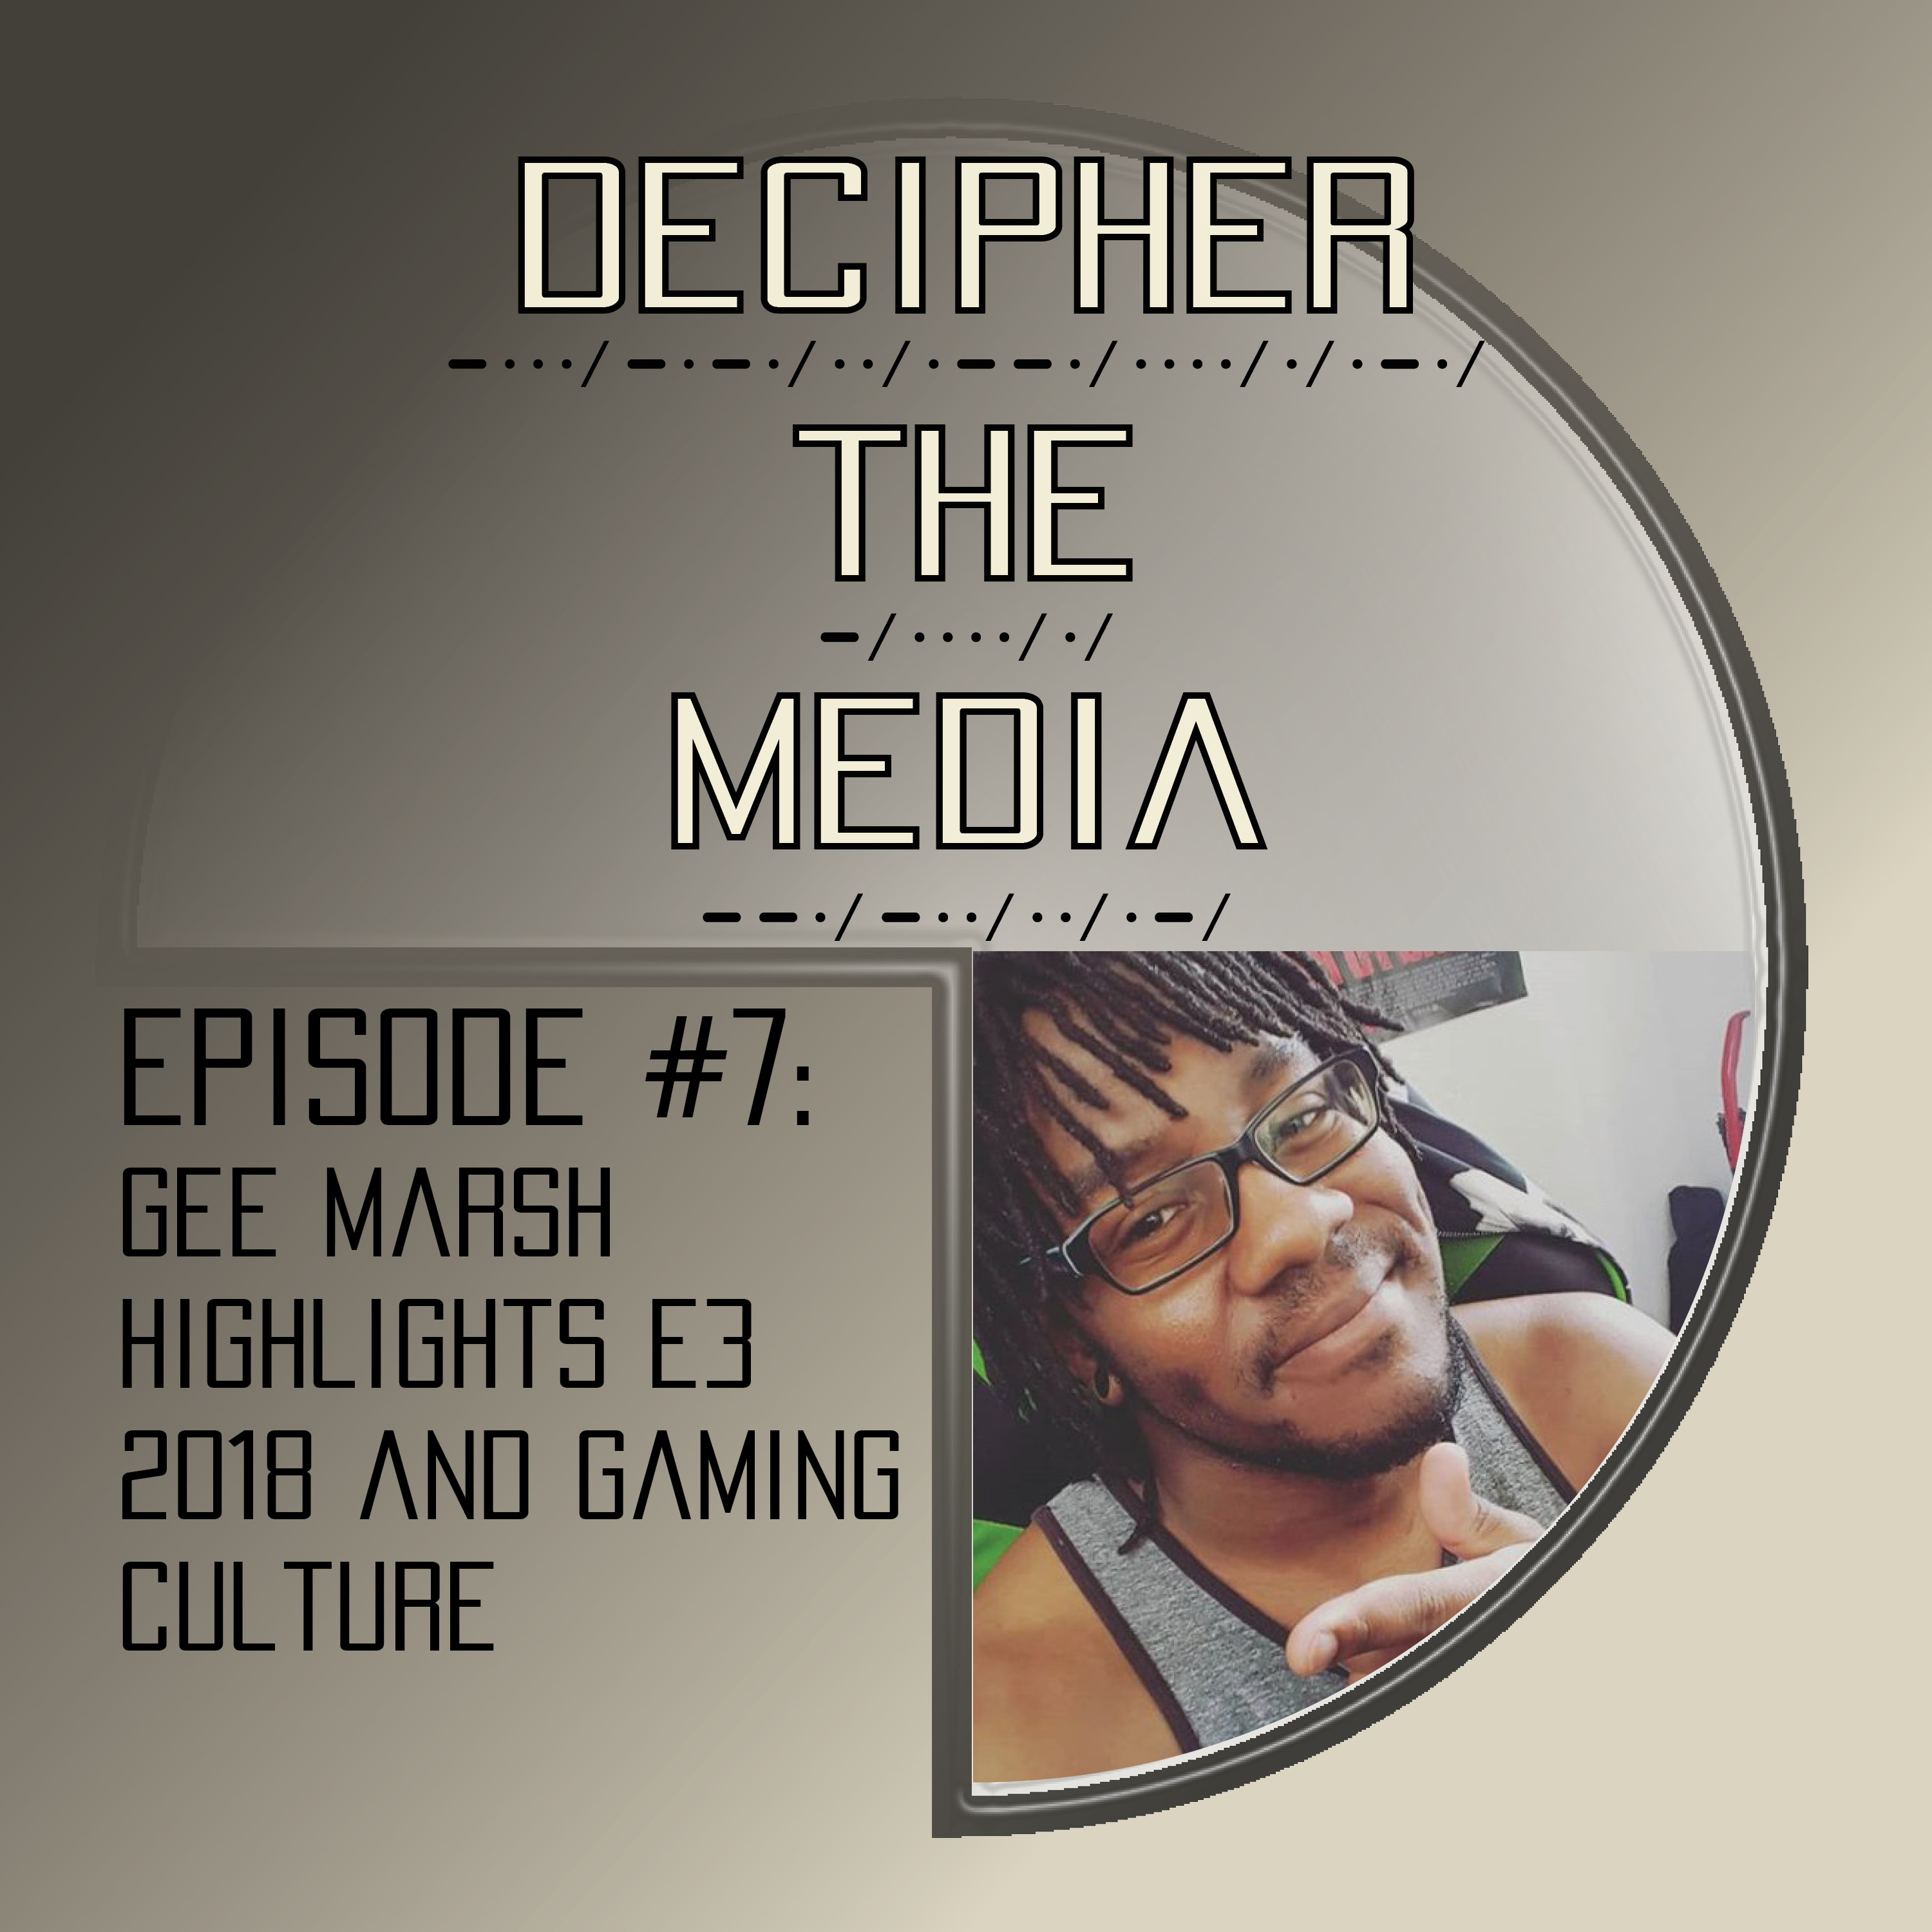 Decipher the Media #7: Gee Marsh highlights E3 2018 and gaming culture